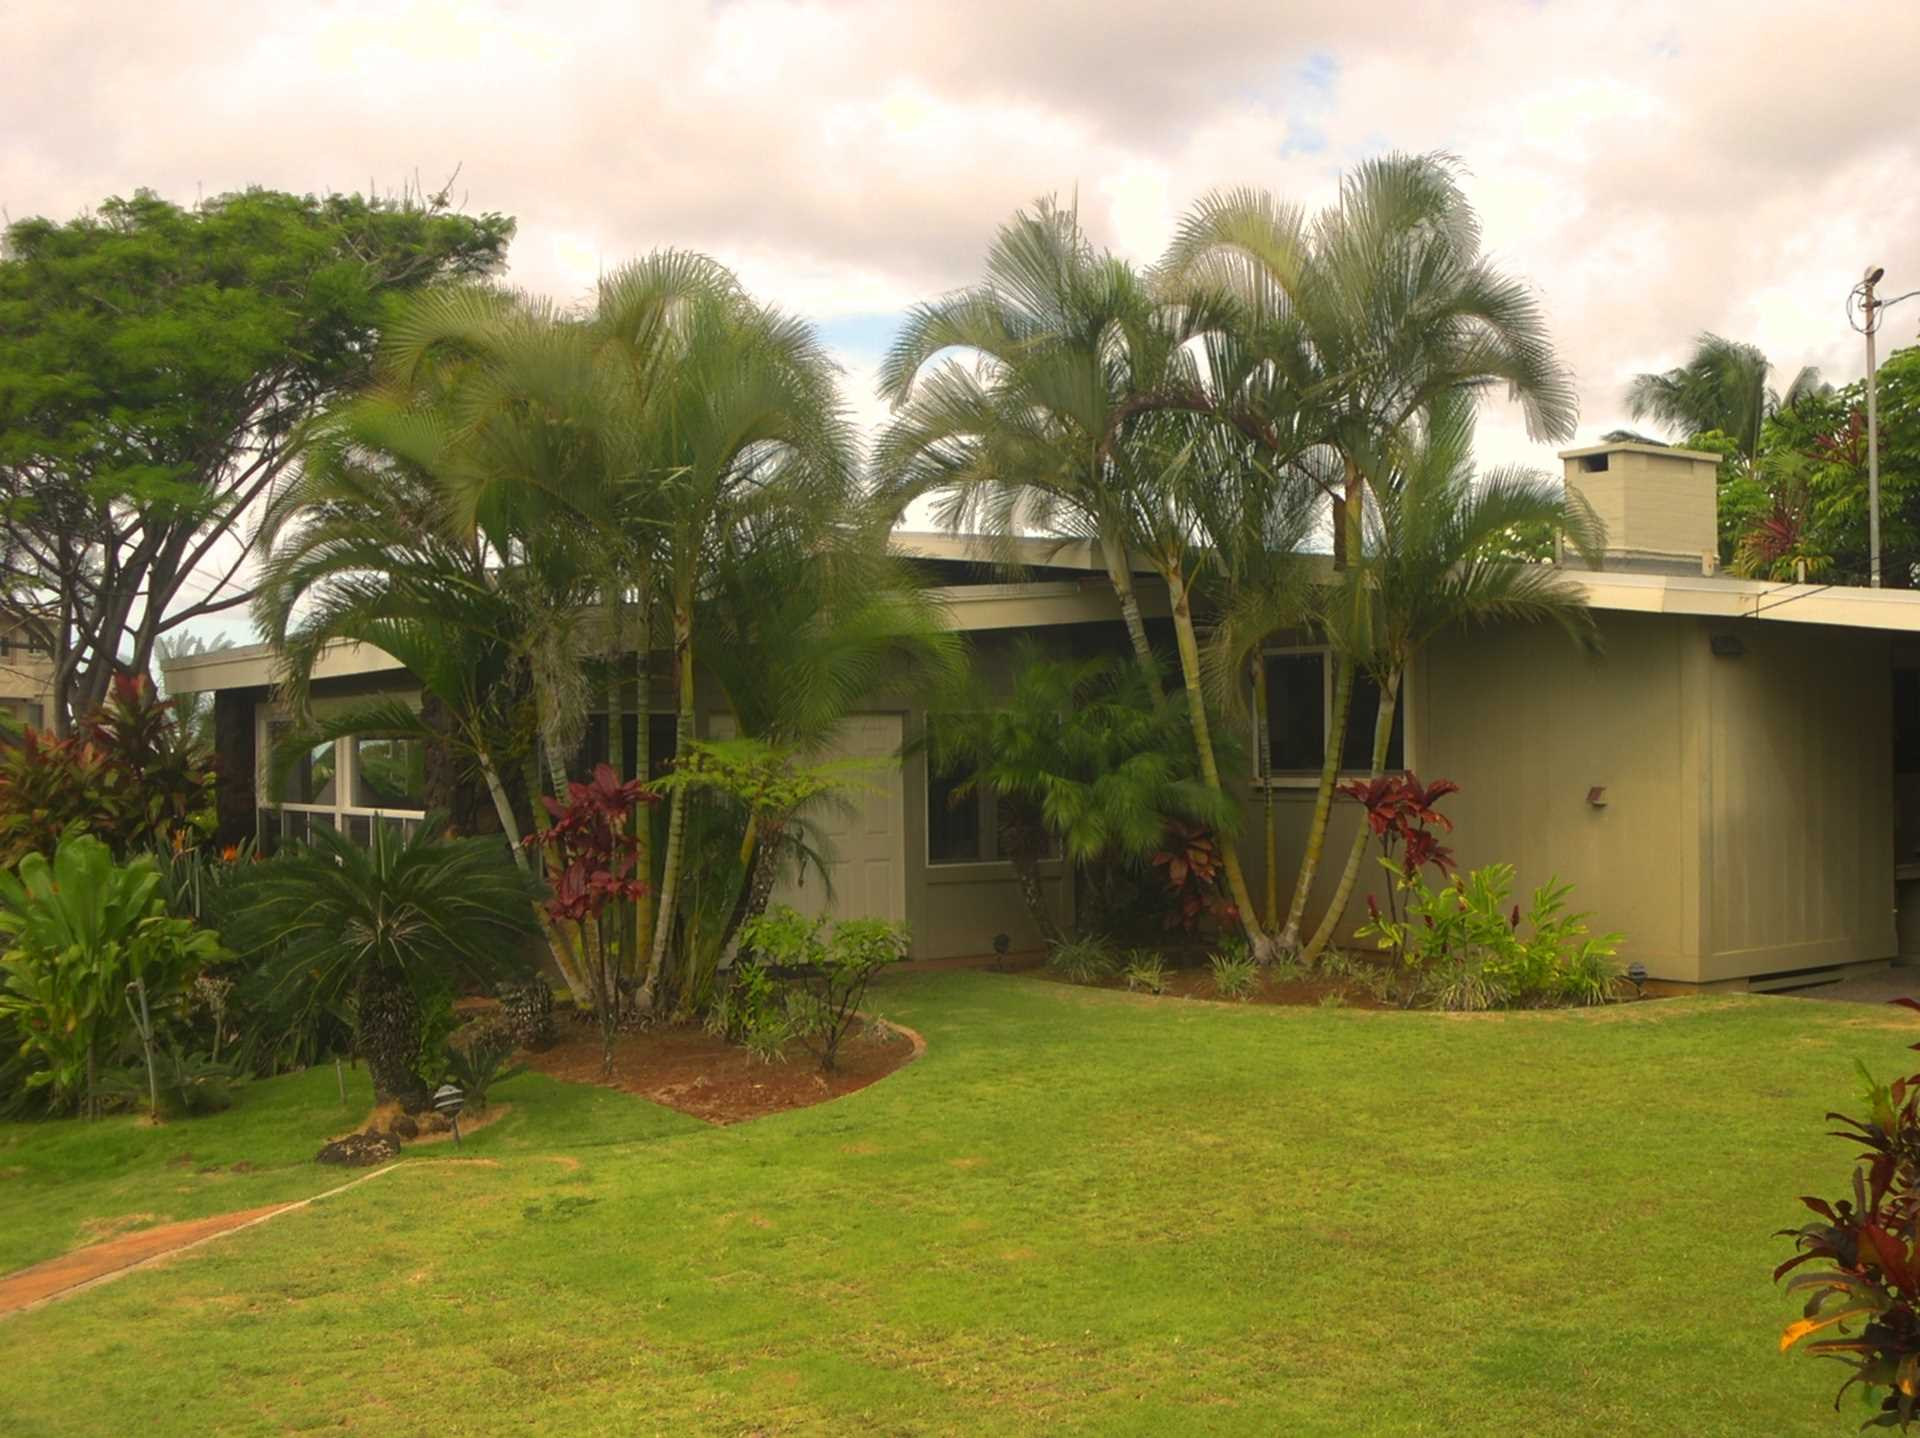 The home is located on a rise overlooking Kauai's southern c